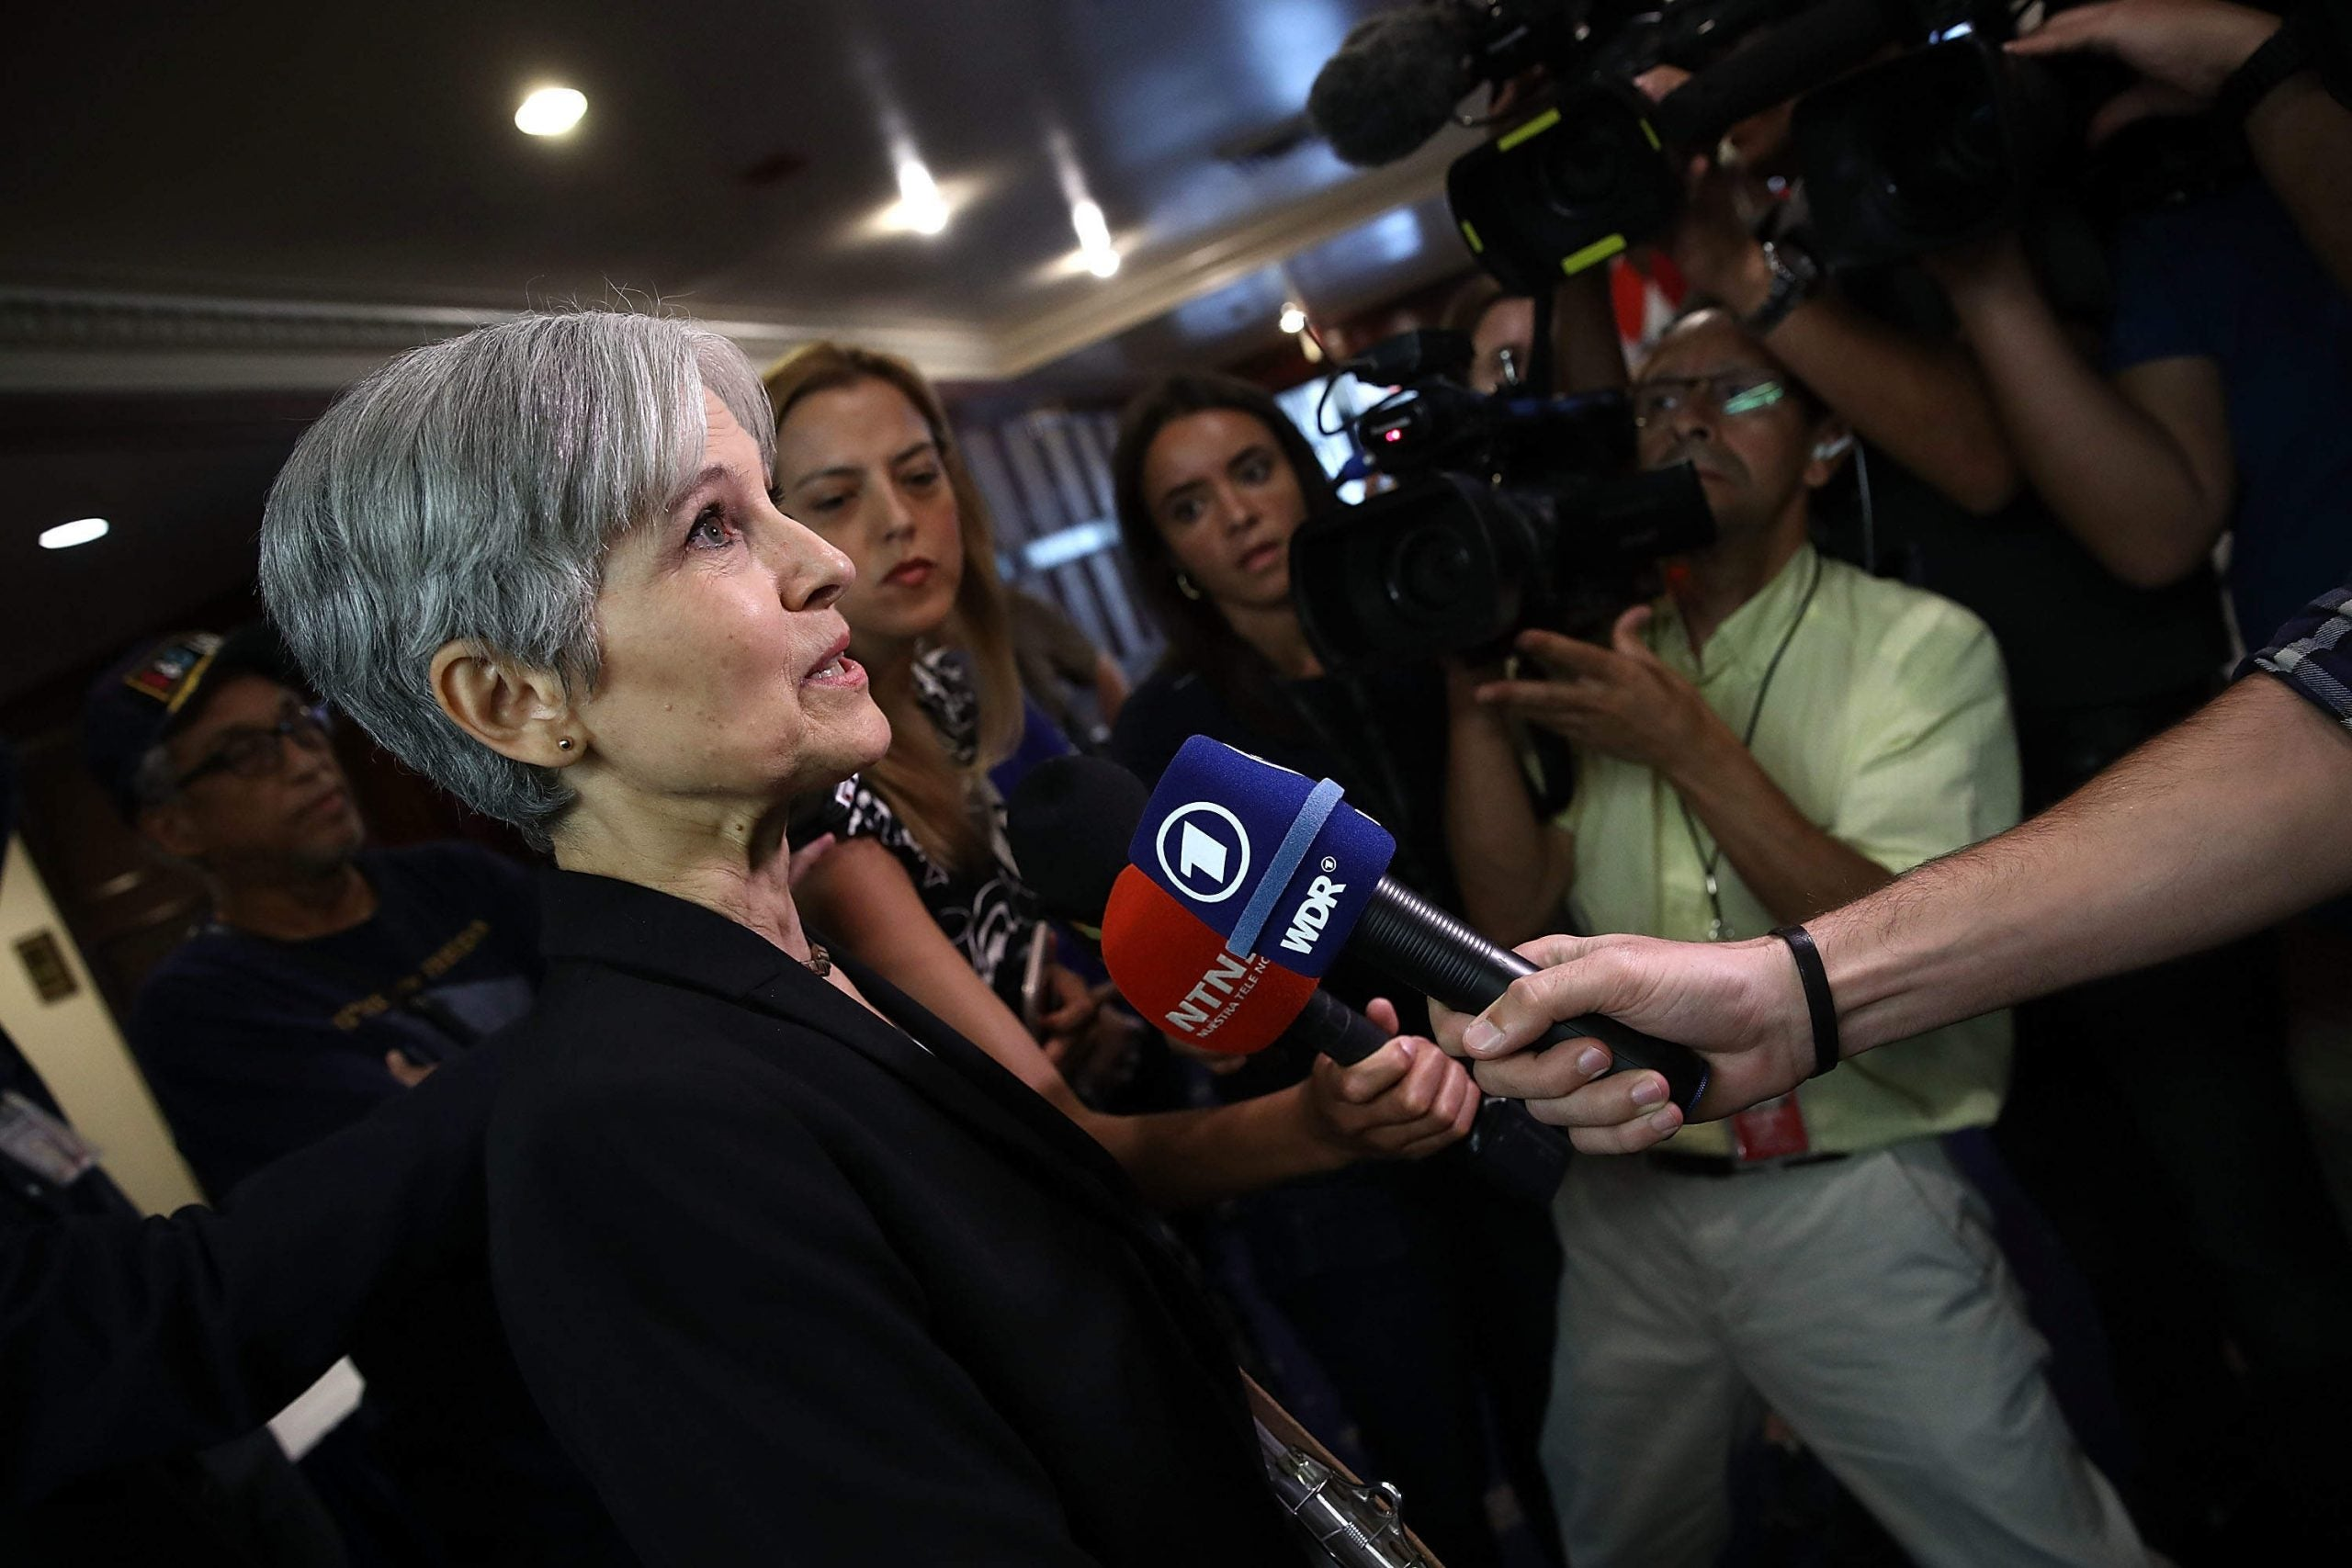 Jill Stein's call for a recount of the US election result is a public service – but is it possible?